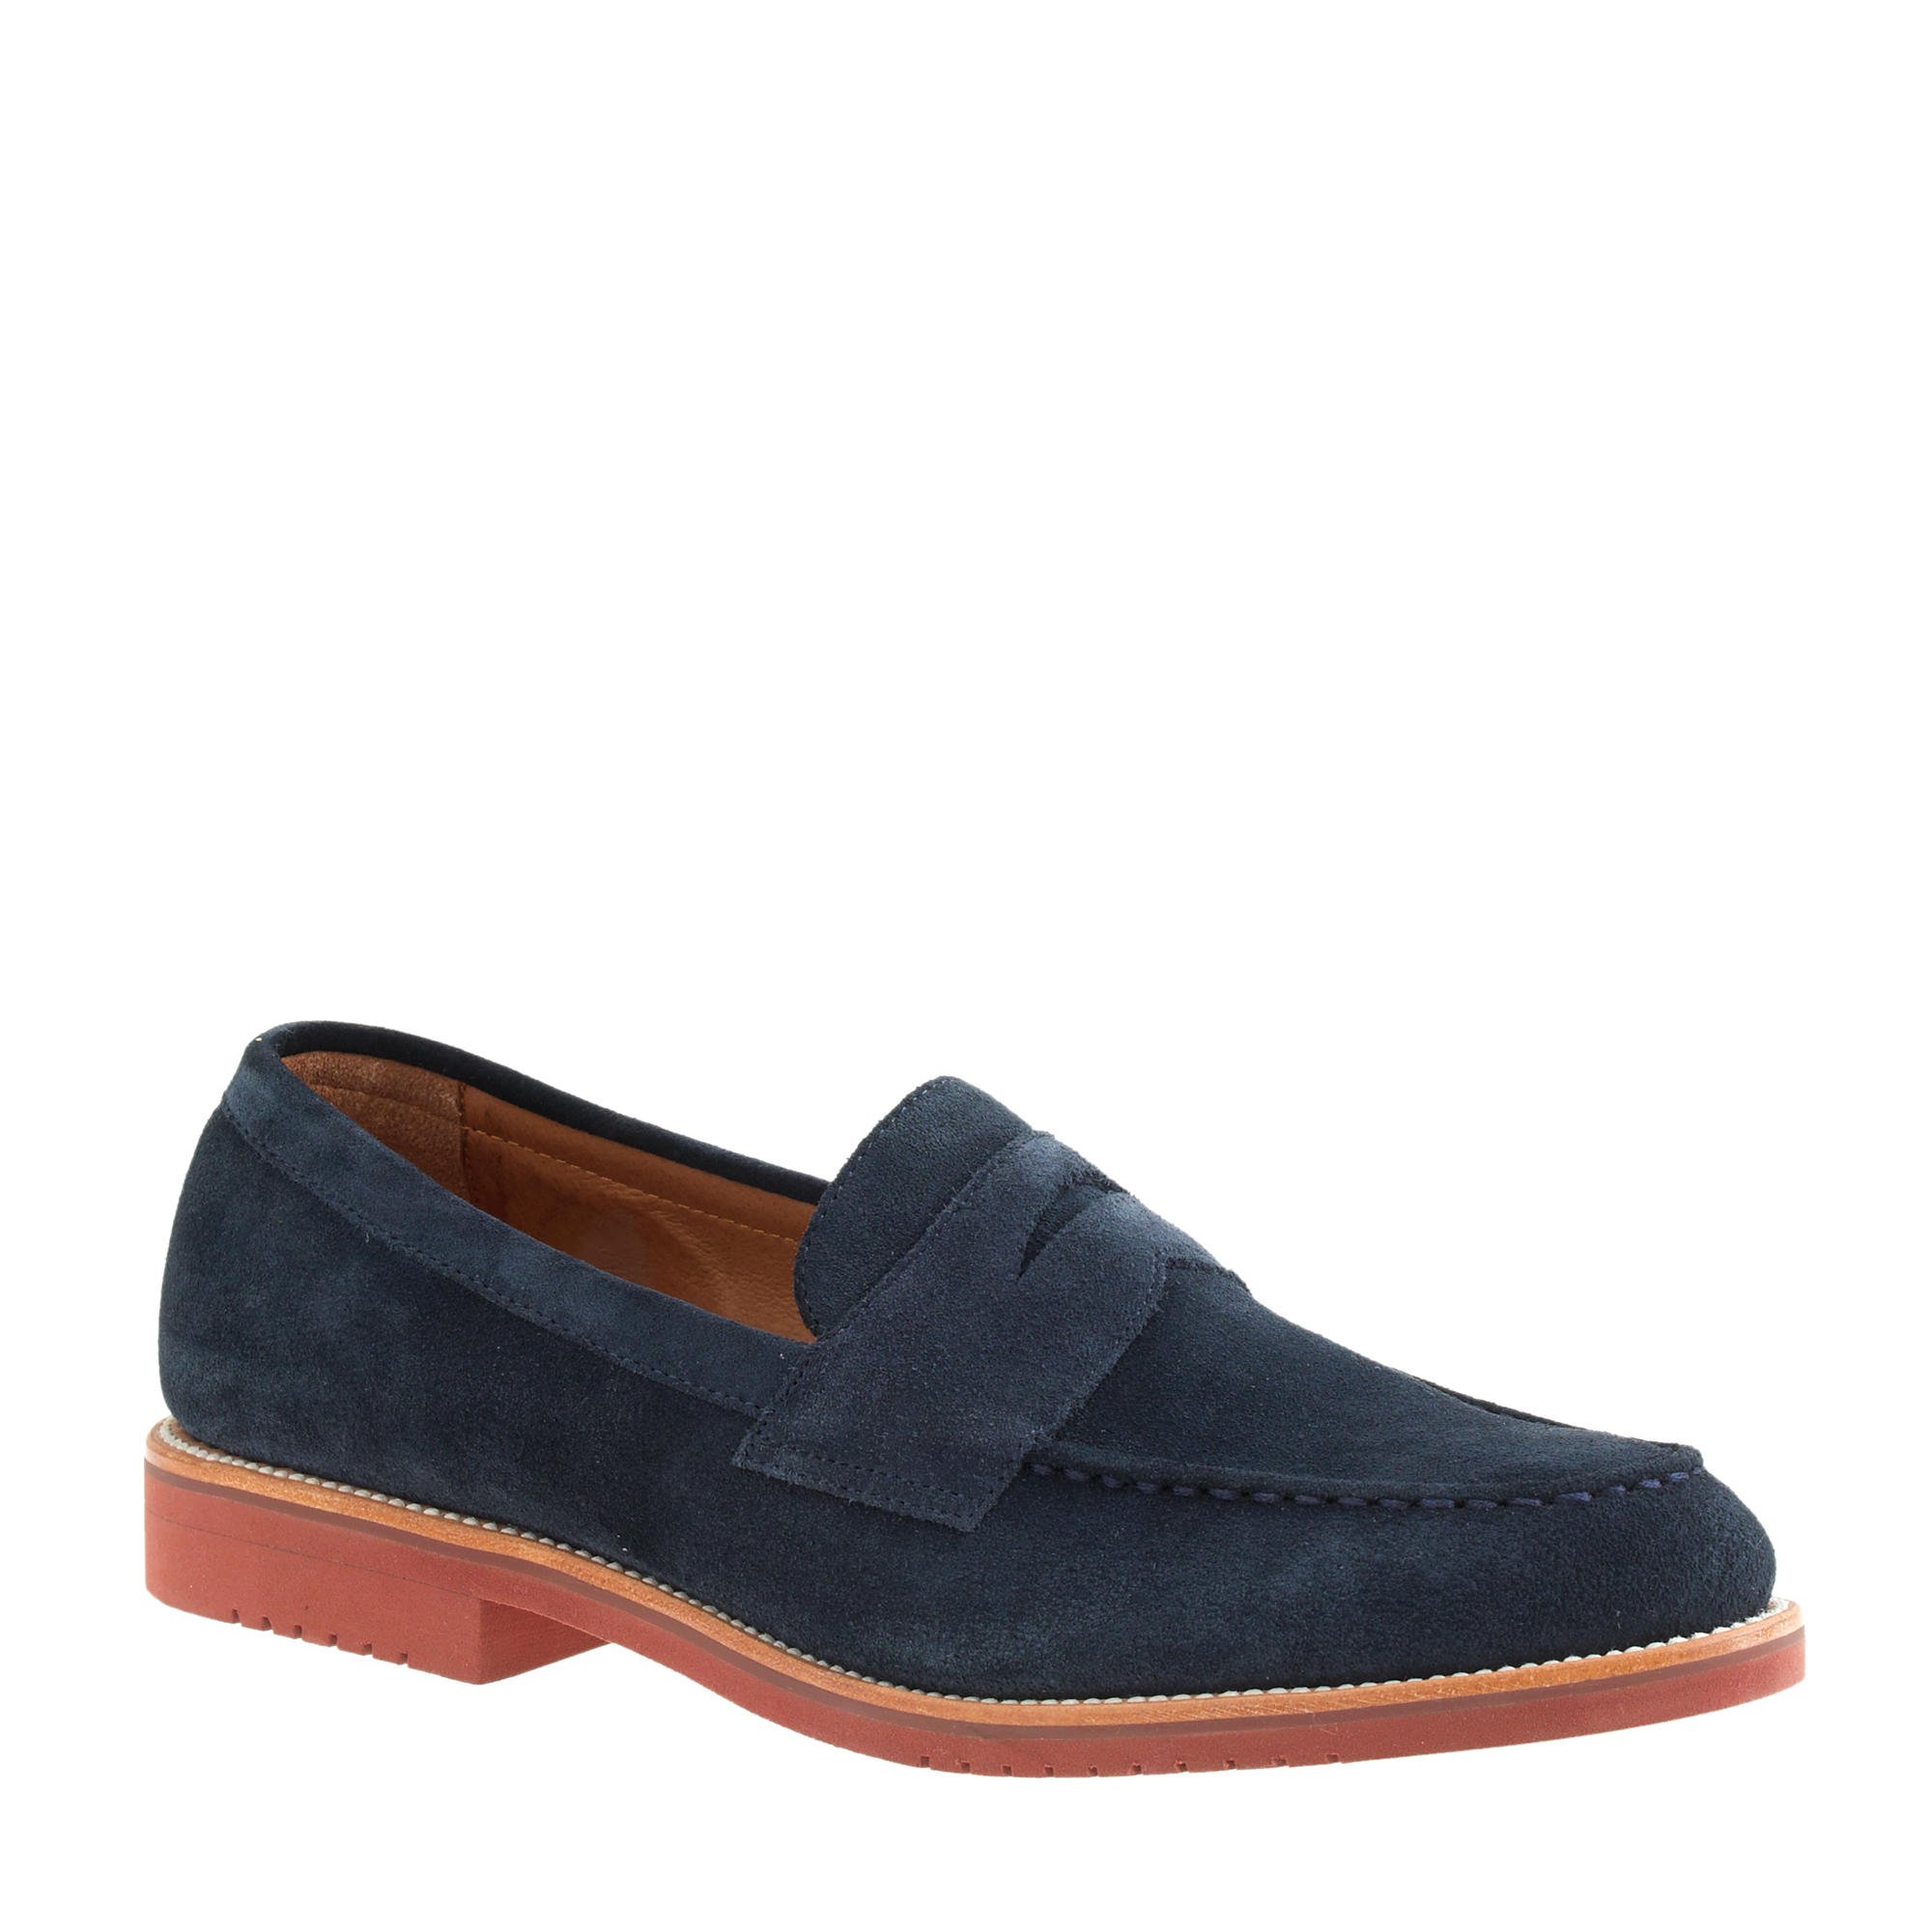 0f6f254aaf2 Lyst - J.Crew Kenton Suede Penny Loafers in Blue for Men